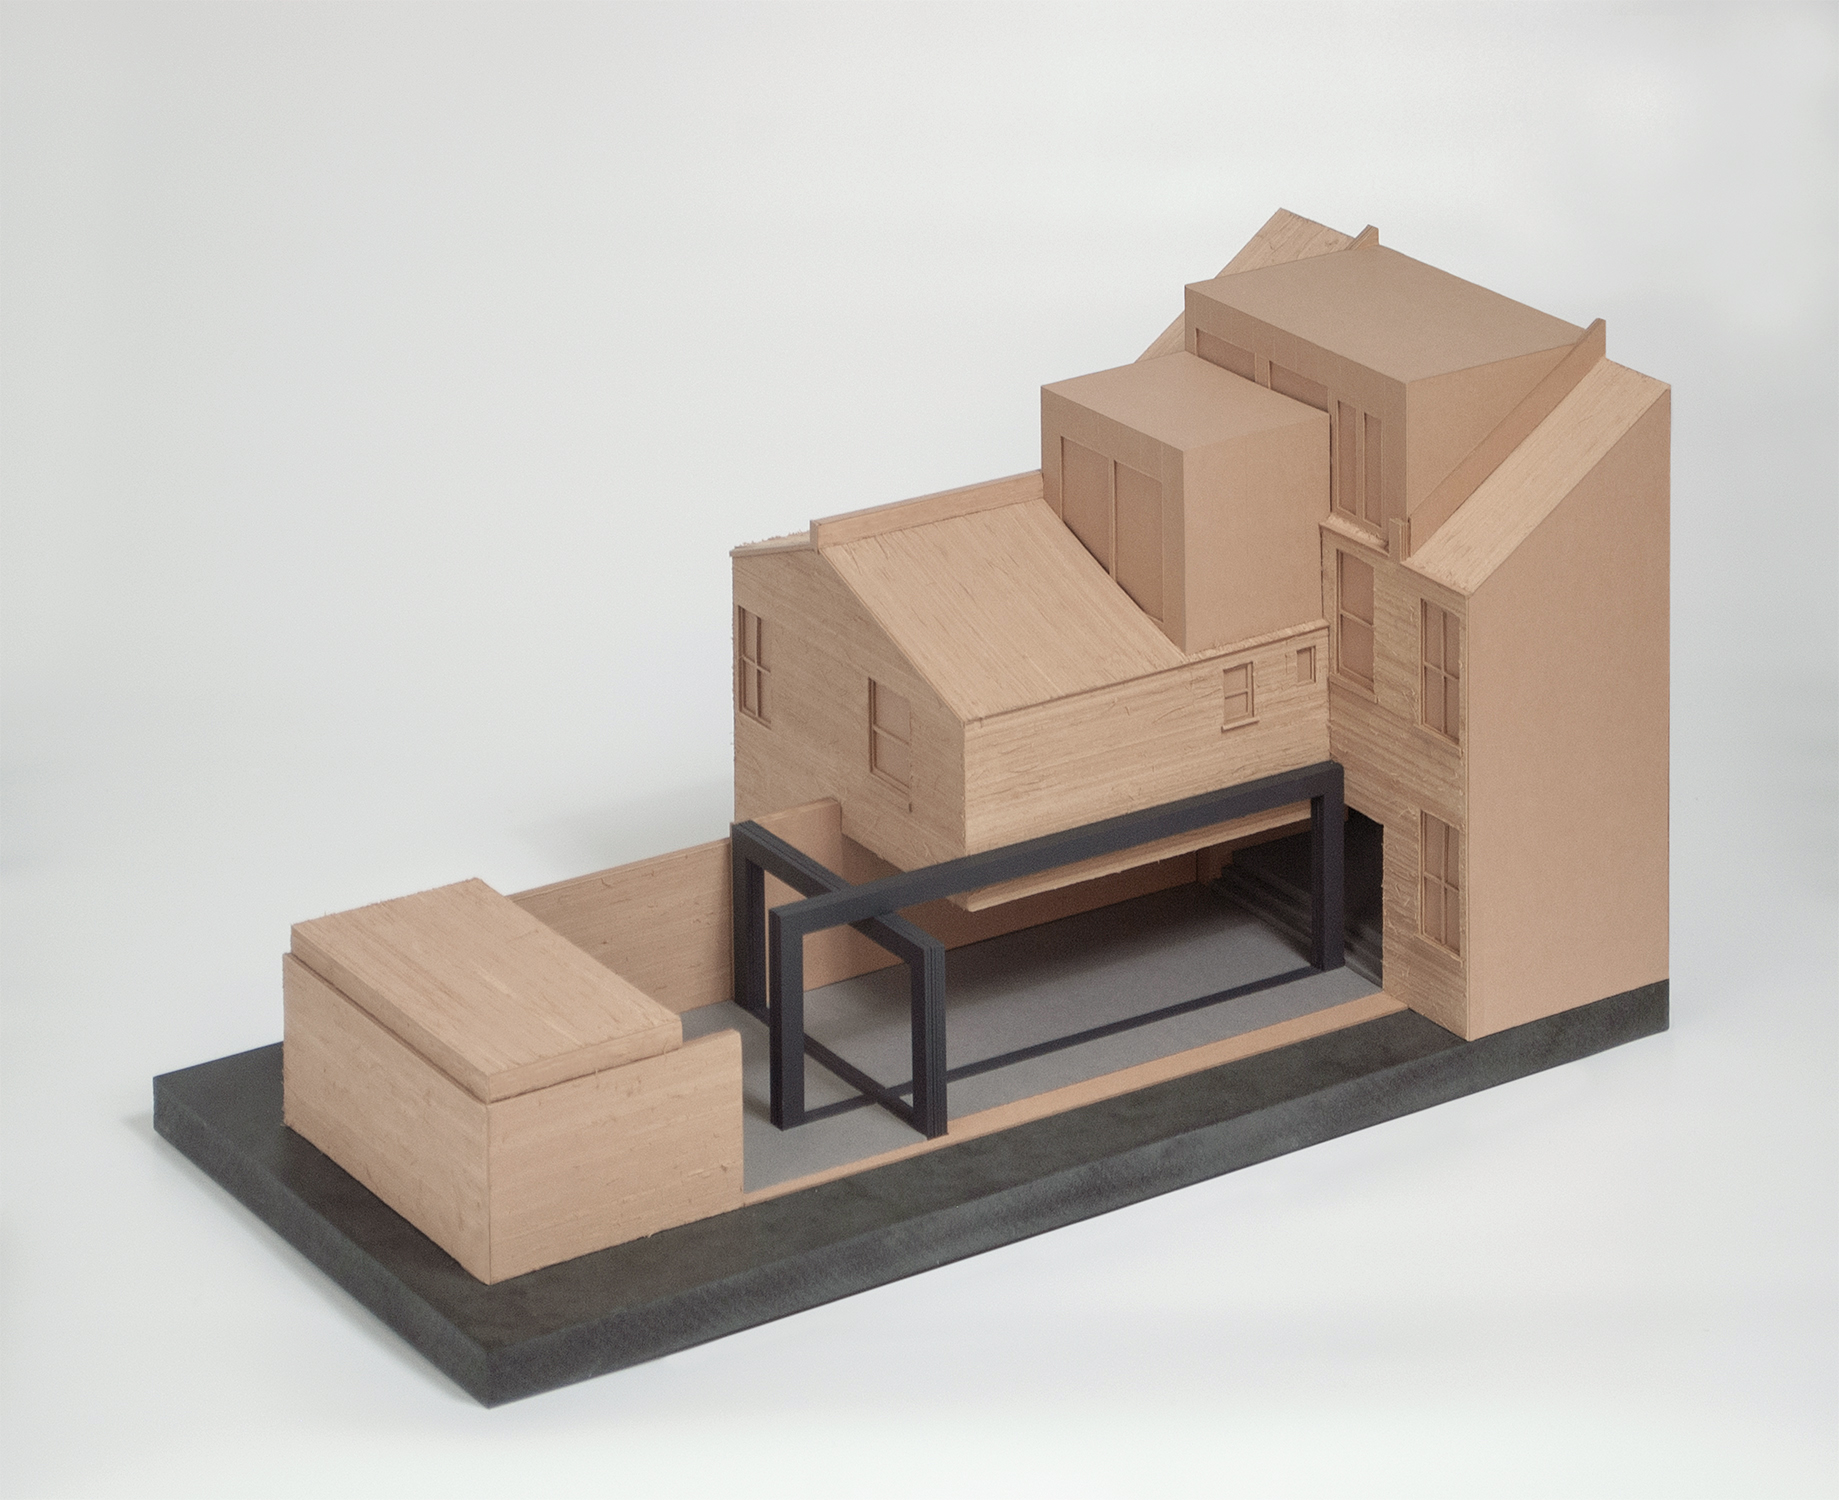 repoussoir_con_form_architects_model01.jpg